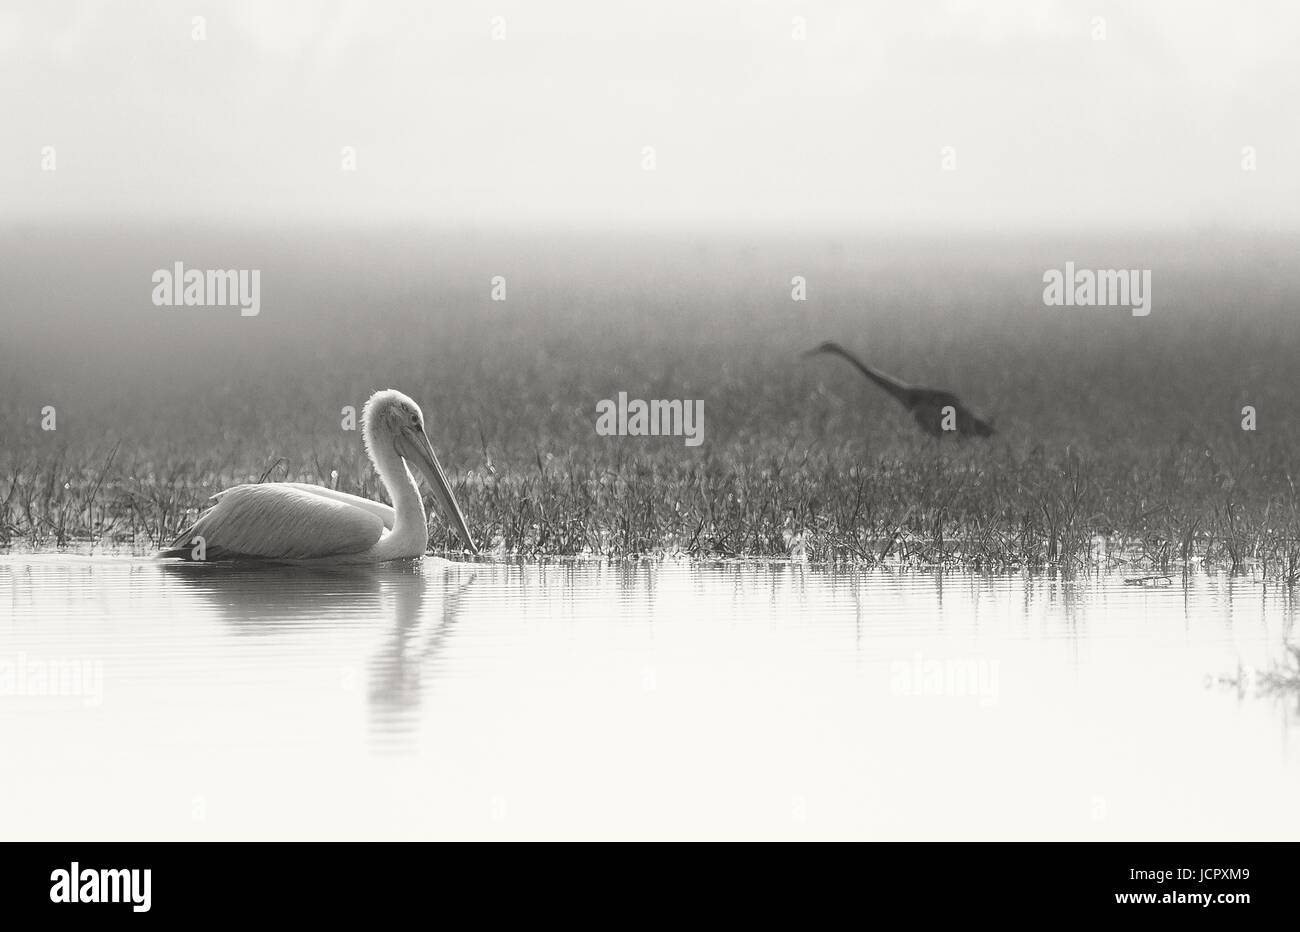 pelican and darter bird on a misty morning - Stock Image